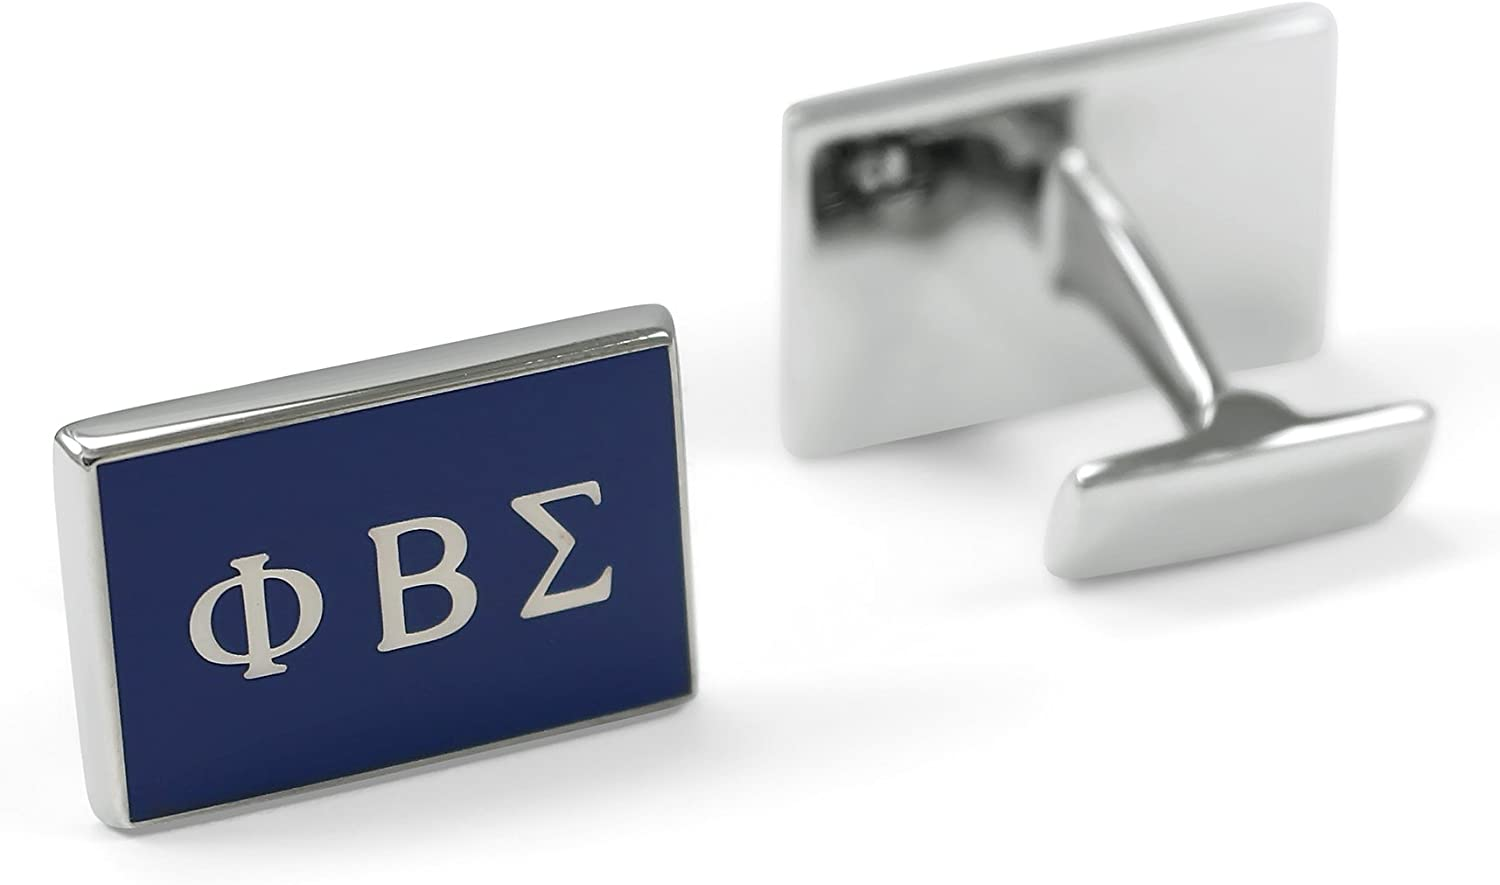 The Collegiate Standard Phi Beta Sigma Fraternity Cufflinks with Greek Letters and Royal Blue Enamel